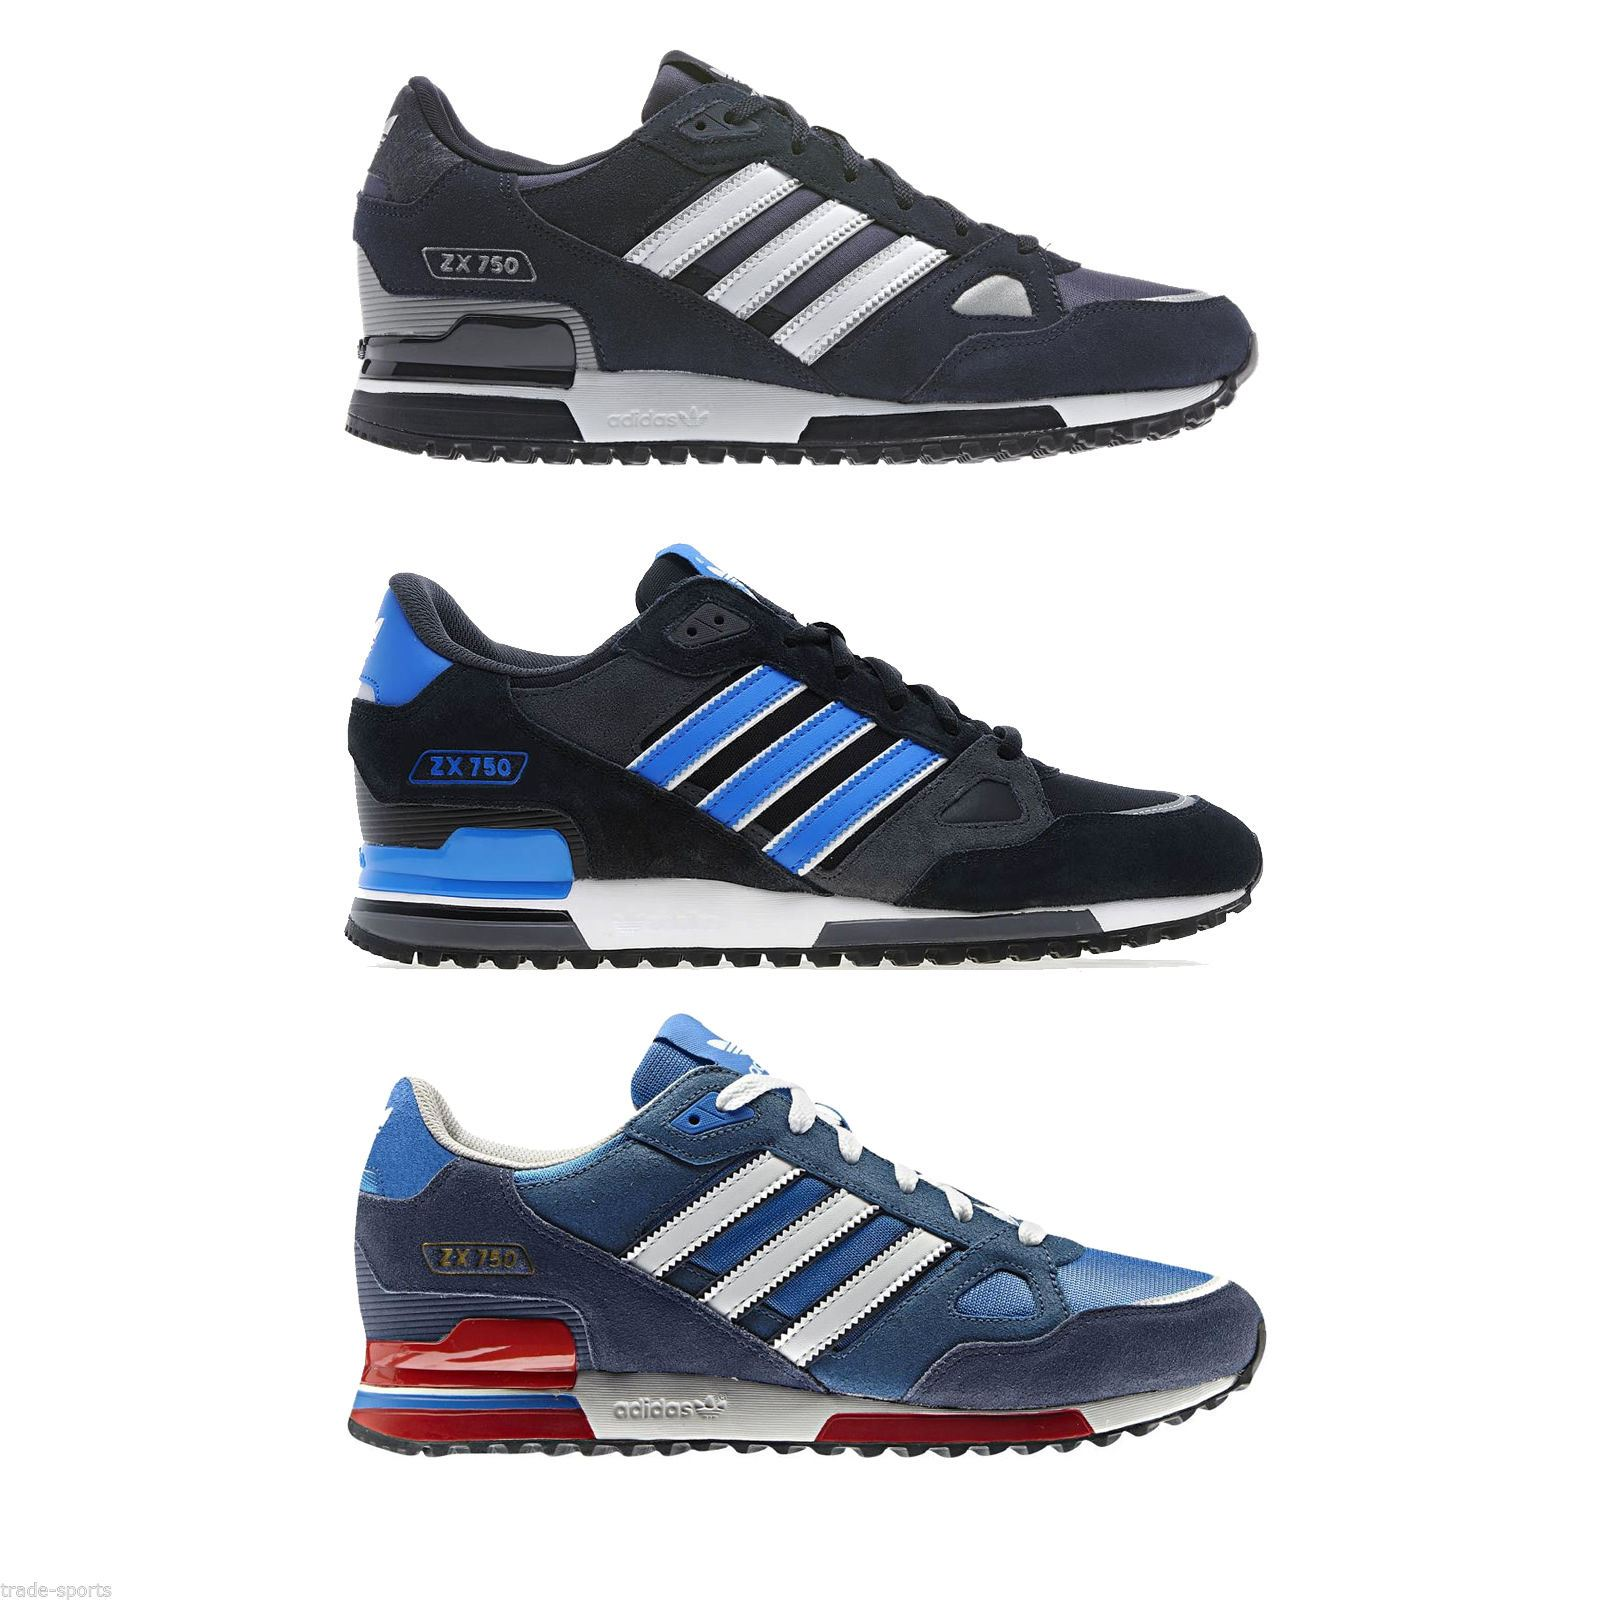 buy online 38238 439ad Details about ADIDAS ORIGINALS ZX 750 MENS RUNNING TRAINERS BLUE BLACK NAVY  SNEAKERS SHOES NEW